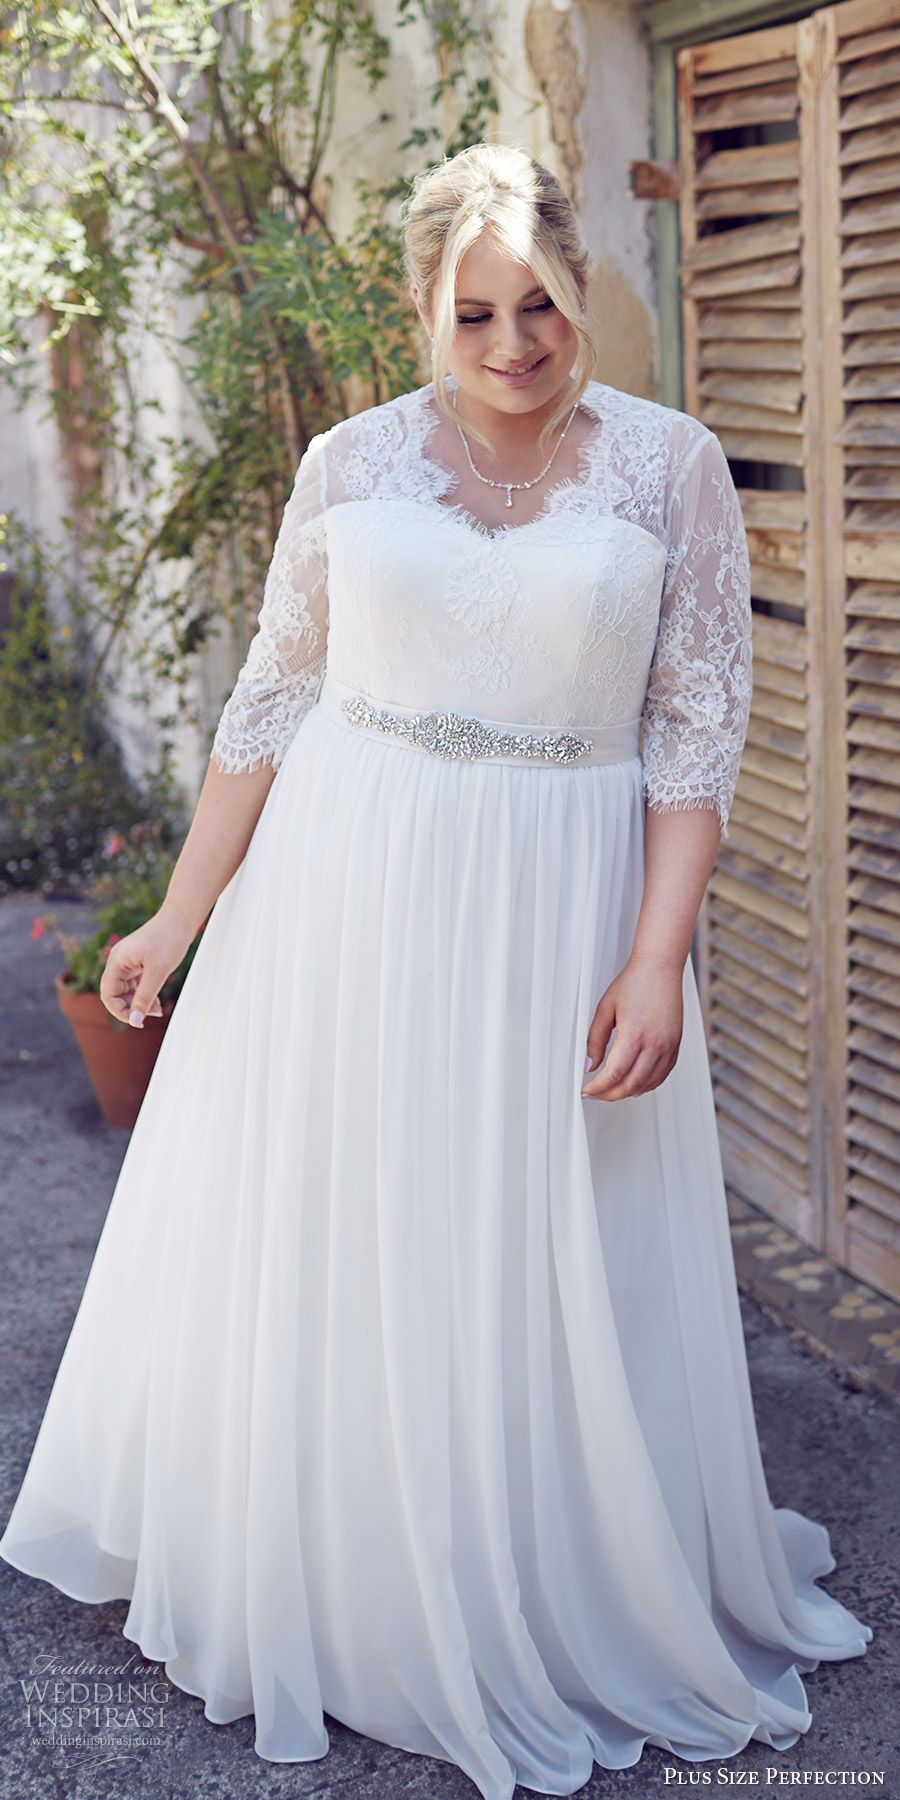 Wedding Gowns For Short Curvy Brides : Wedding dress for curvy bride sale long dresses